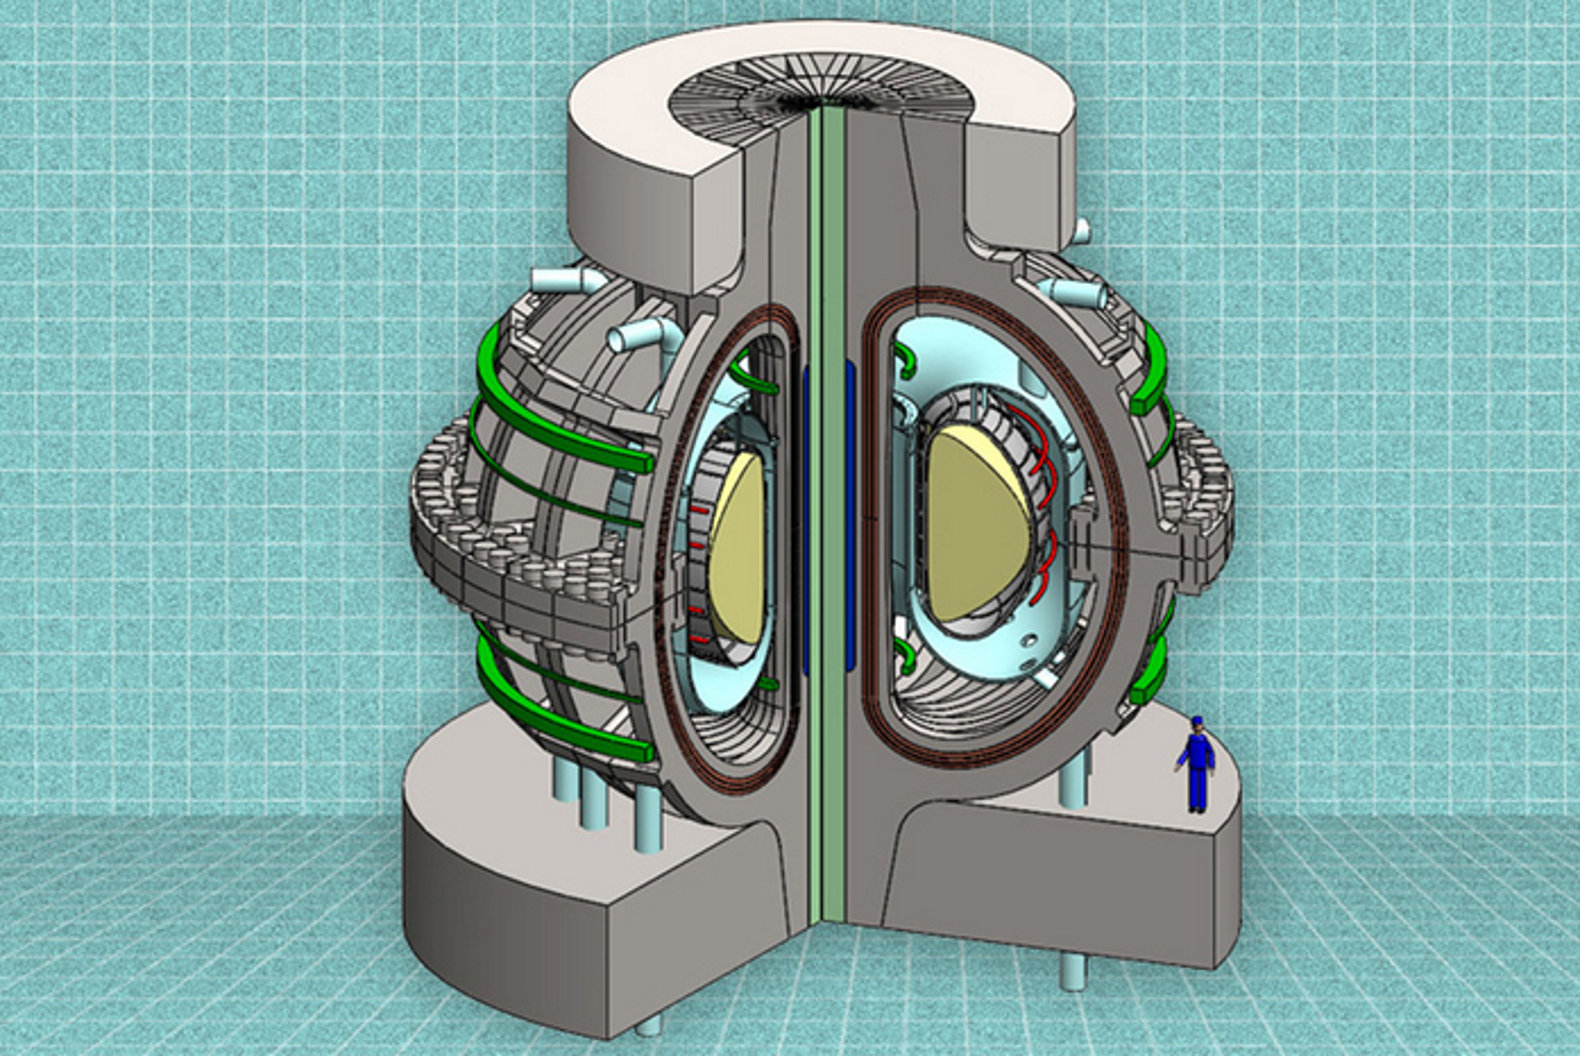 MIT's groundbreaking mini fusion reactor could power the world within 10 years